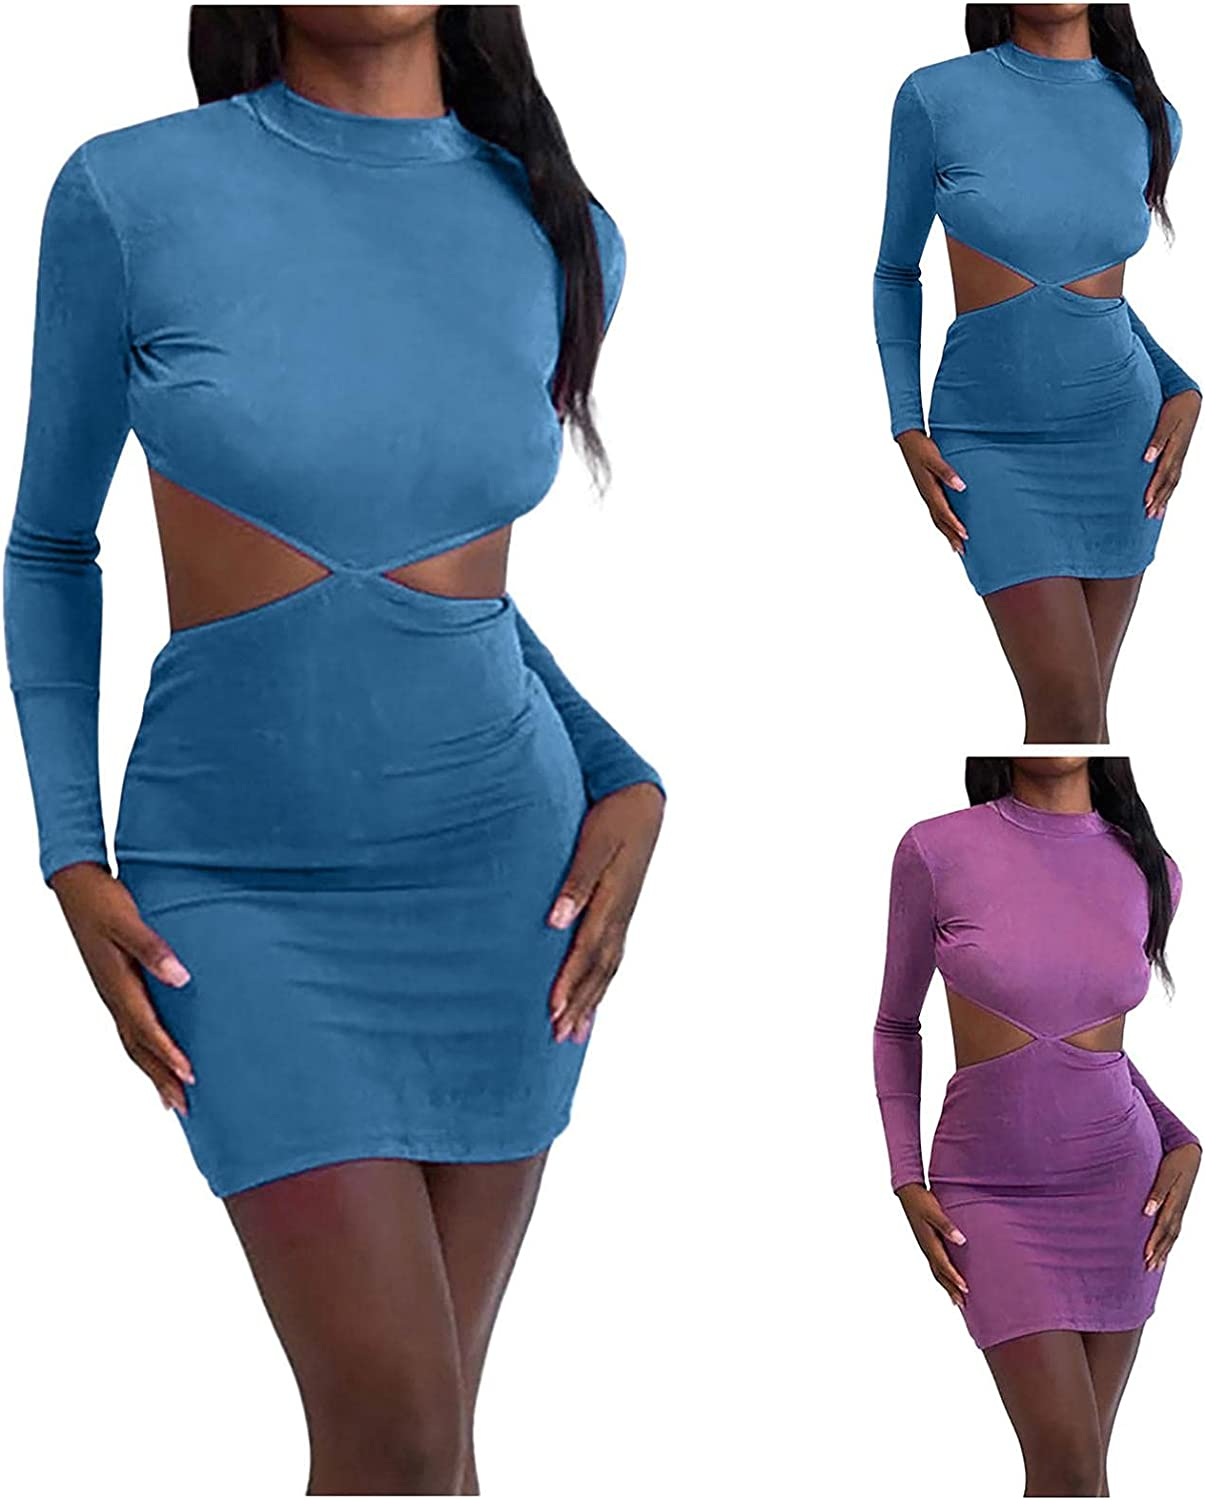 Womens Sexy Bodycon Mini Dresses Long Sleeve Top Casual Back lace-up Dress Party Clubwear Sundress Cocktail Dresses